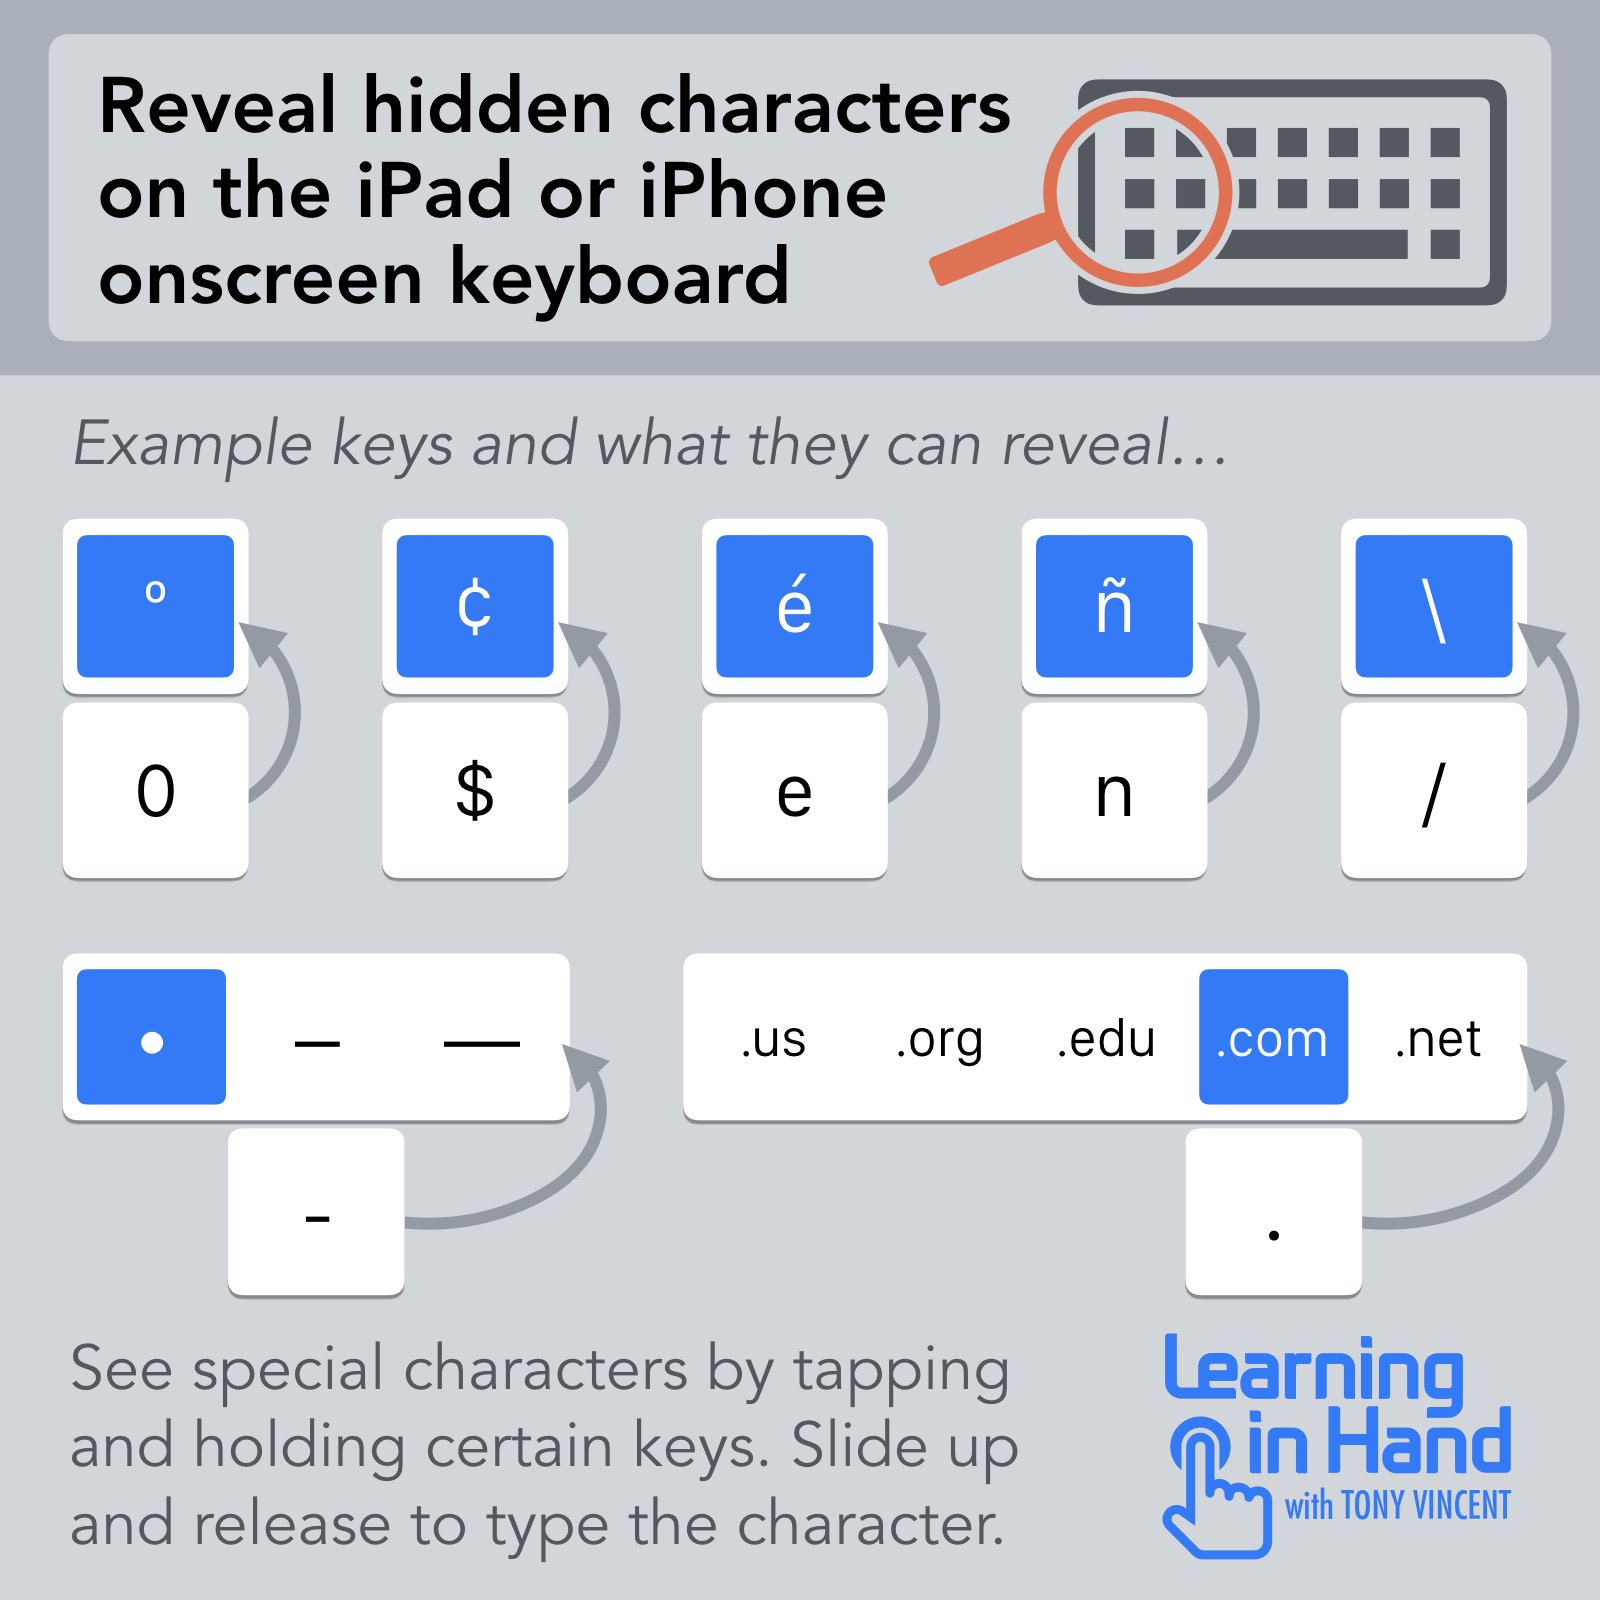 ⌨️ Apple has hidden some characters on the iOS keyboard. It's a matter of holding down certain keys to reveal things like º, ¢, é, •, and —.  Also, when entering a web address, hold down the period and slide up to instantly type .us, .org, .edu, .com, and .net. https://t.co/NySAQWLVMV